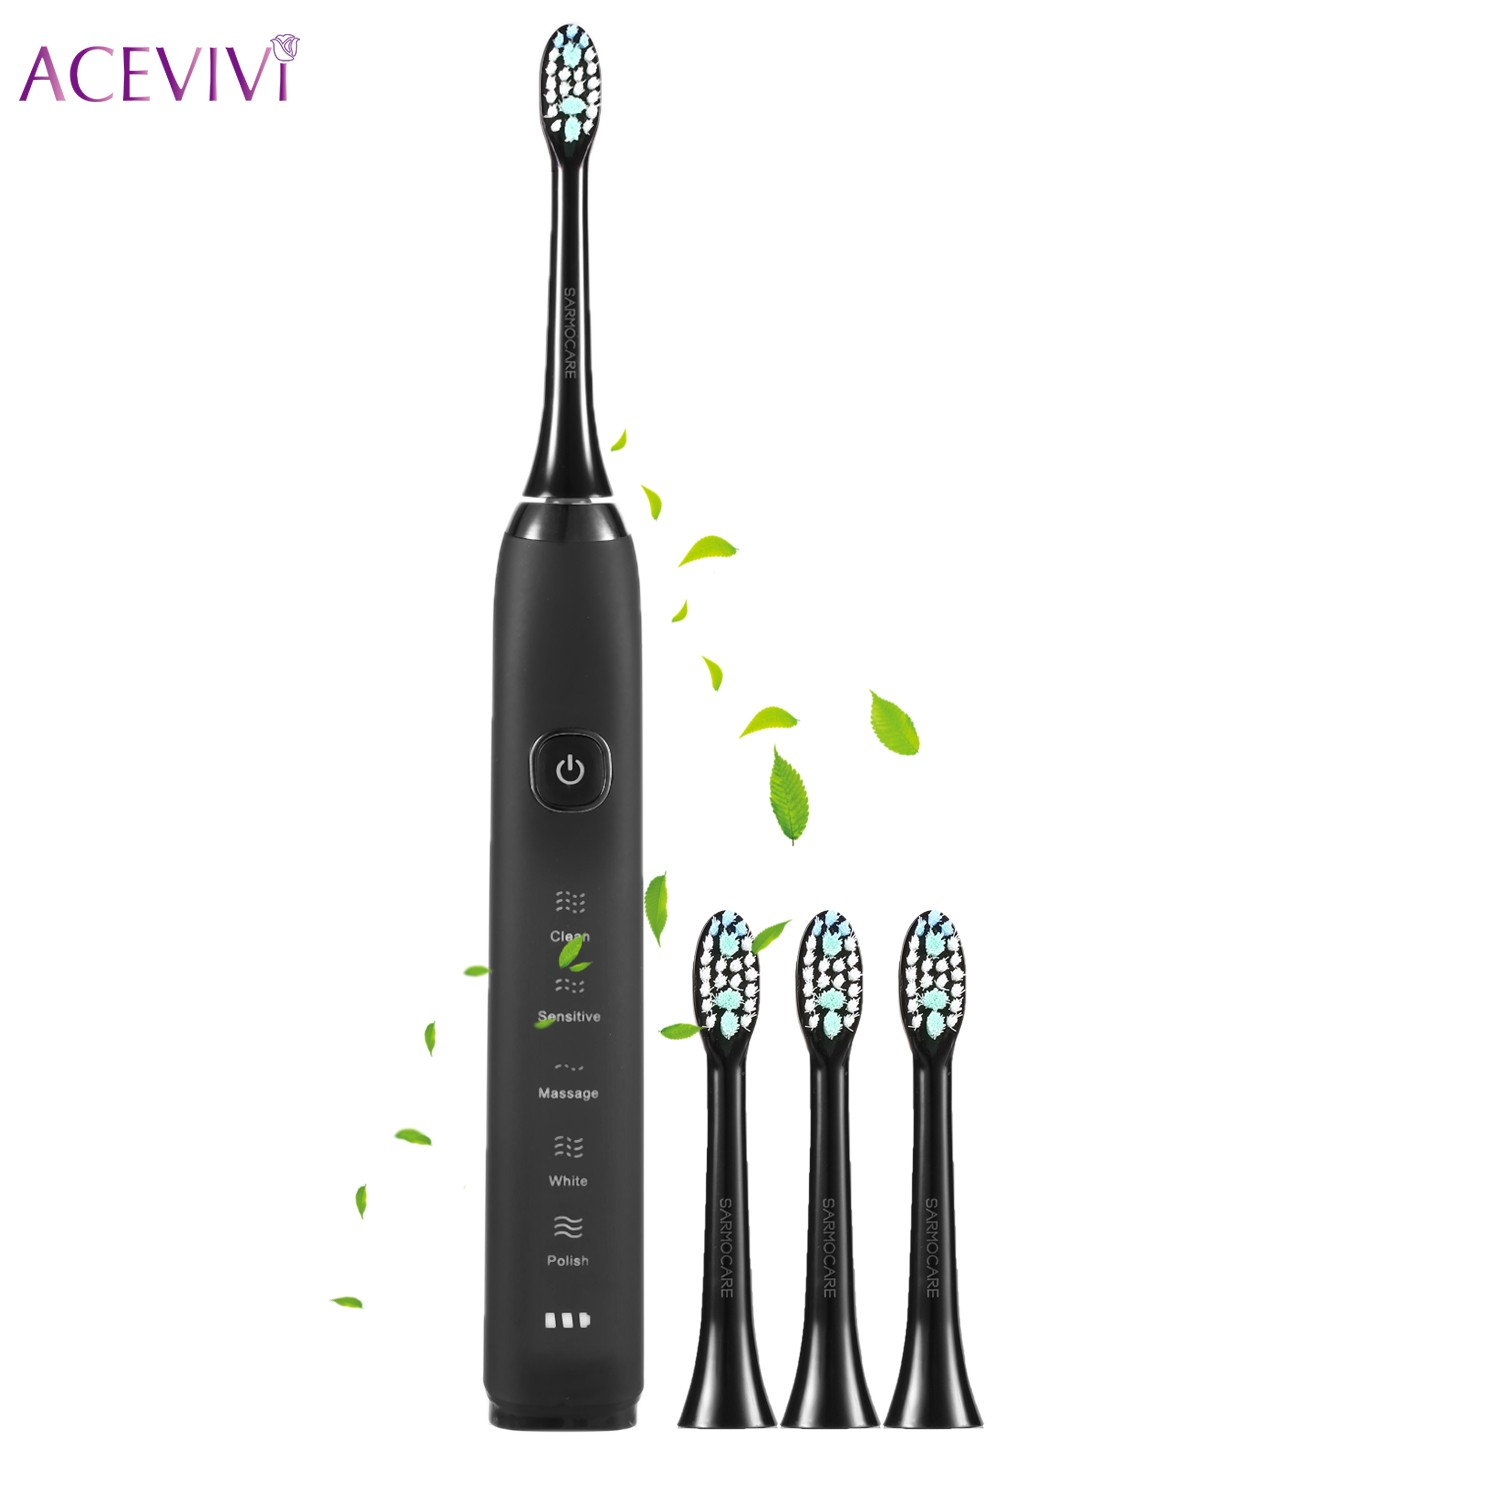 ACEVIVI Sonic Rechargeable Electric Toothbrush with Replacement Heads Brushing Modes